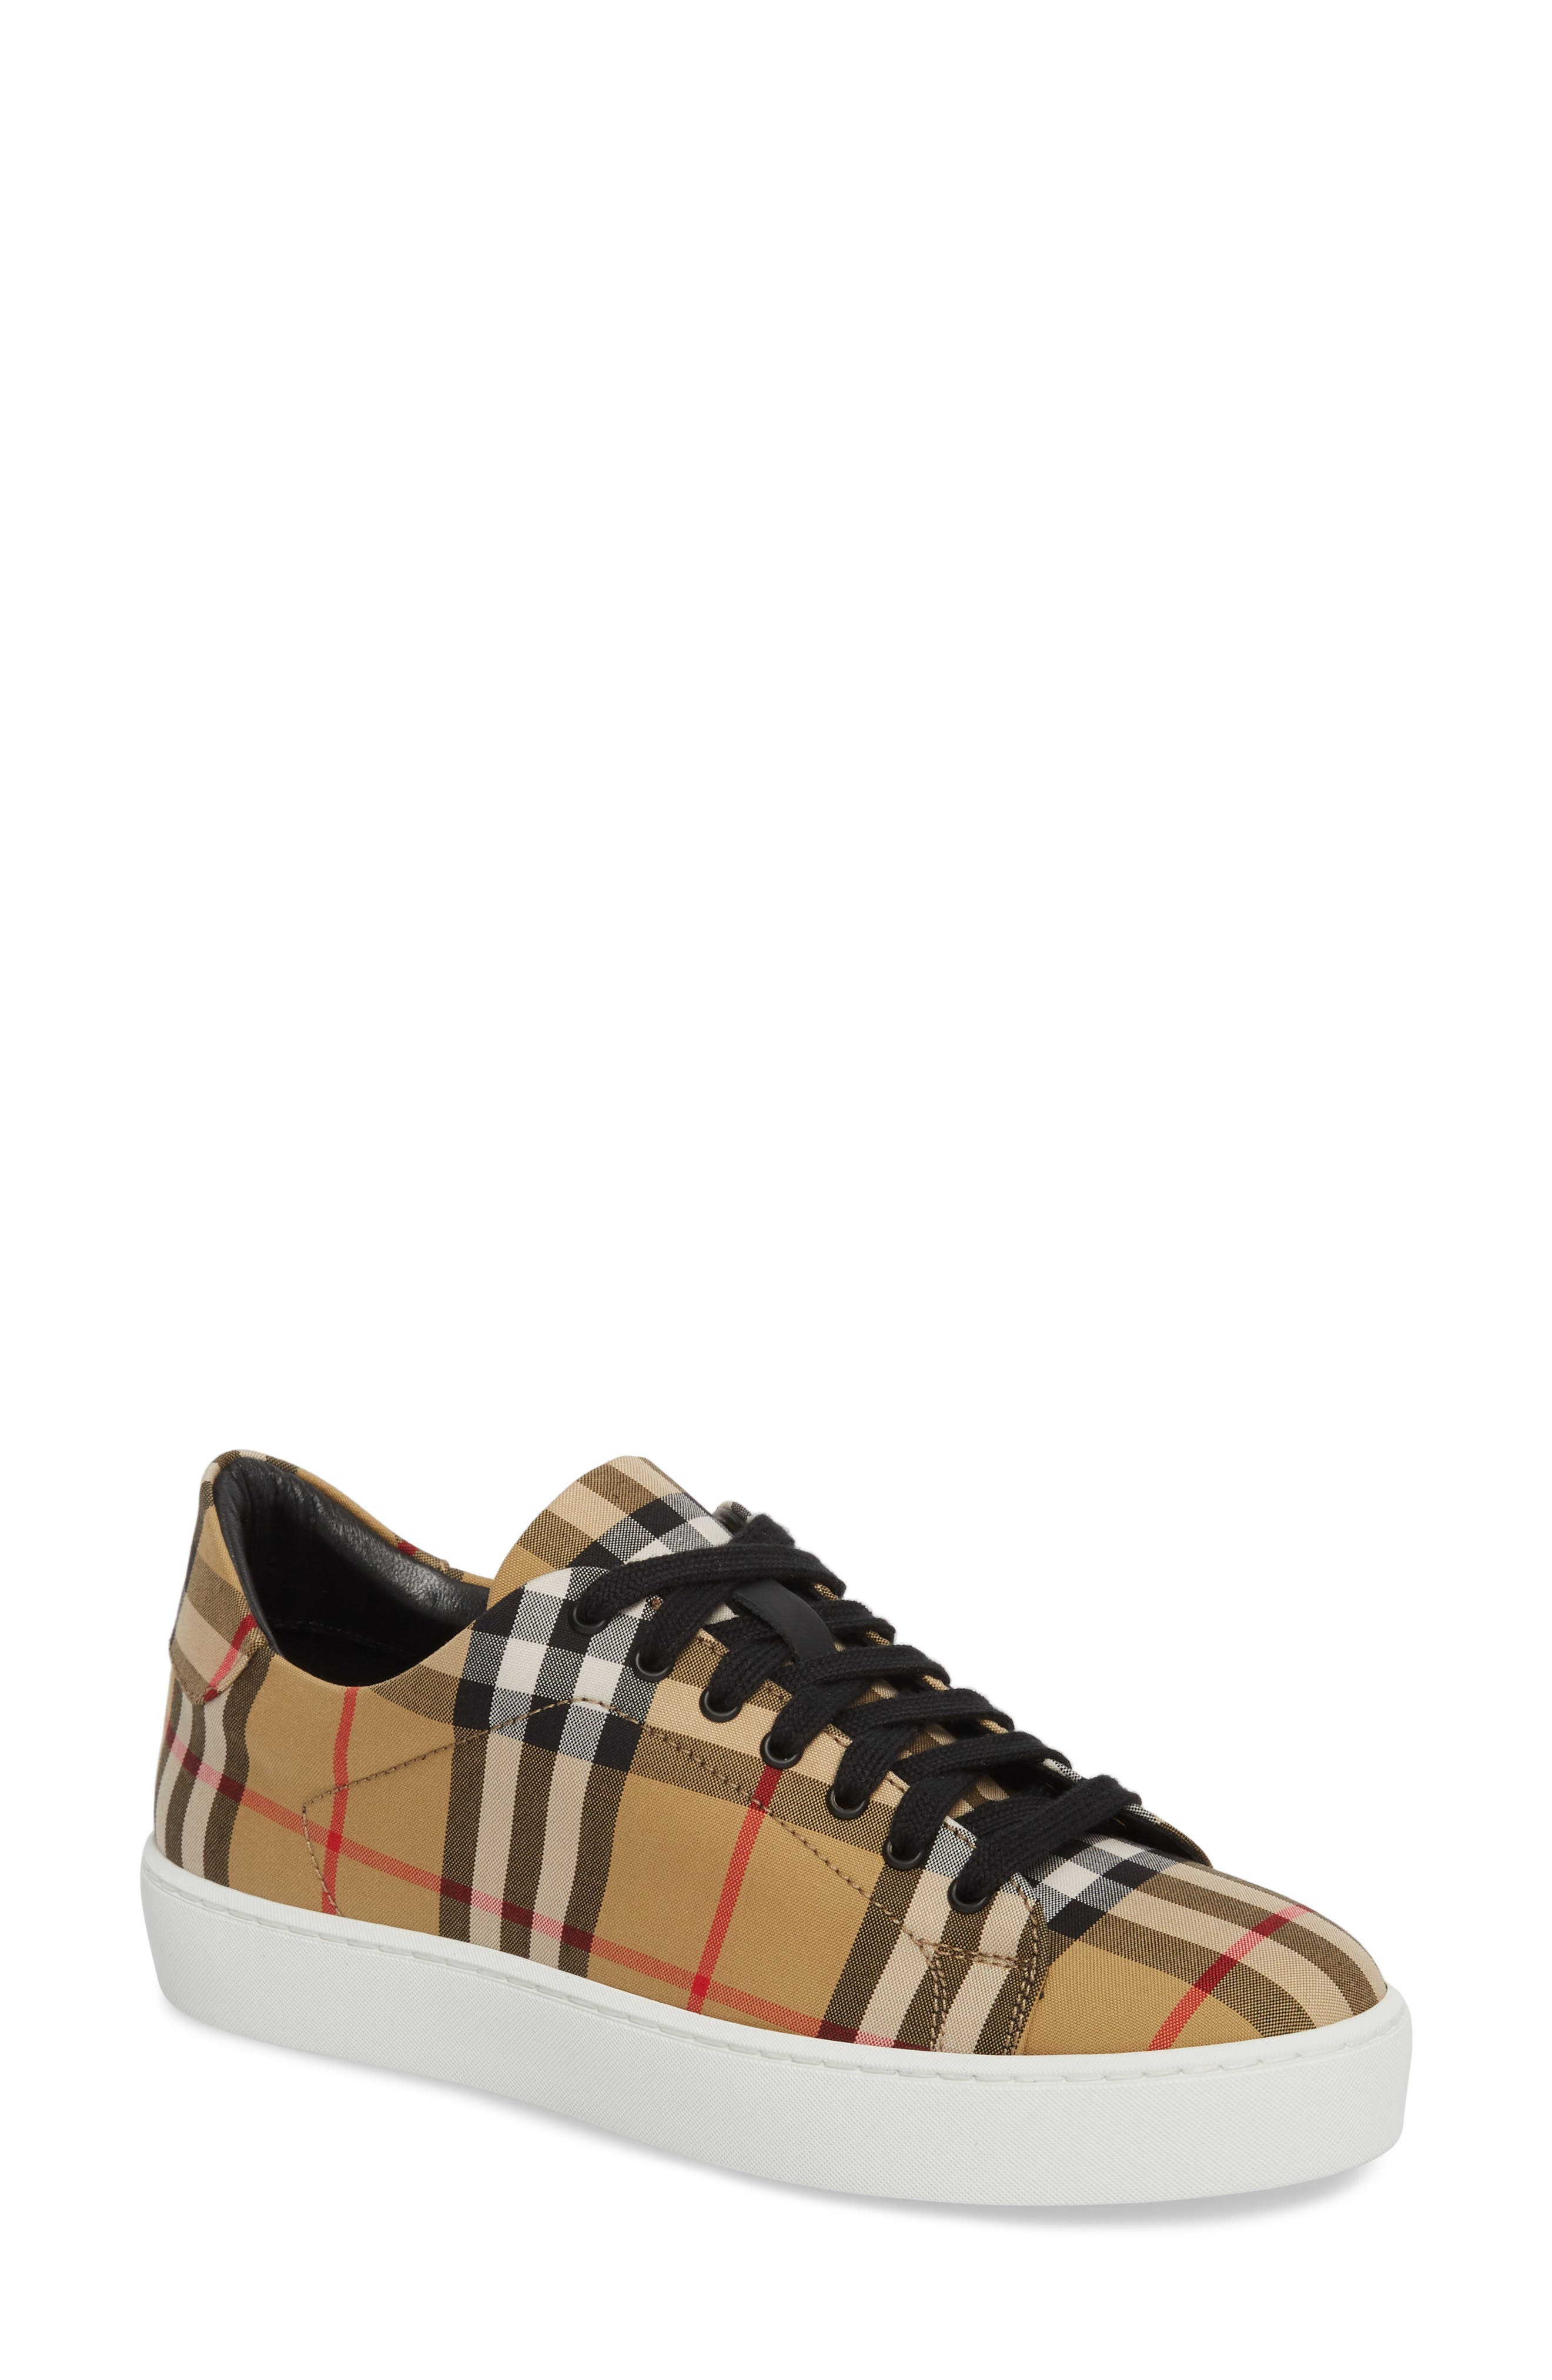 Westford Check Sneaker,                             Main thumbnail 1, color,                             Antique Yellow